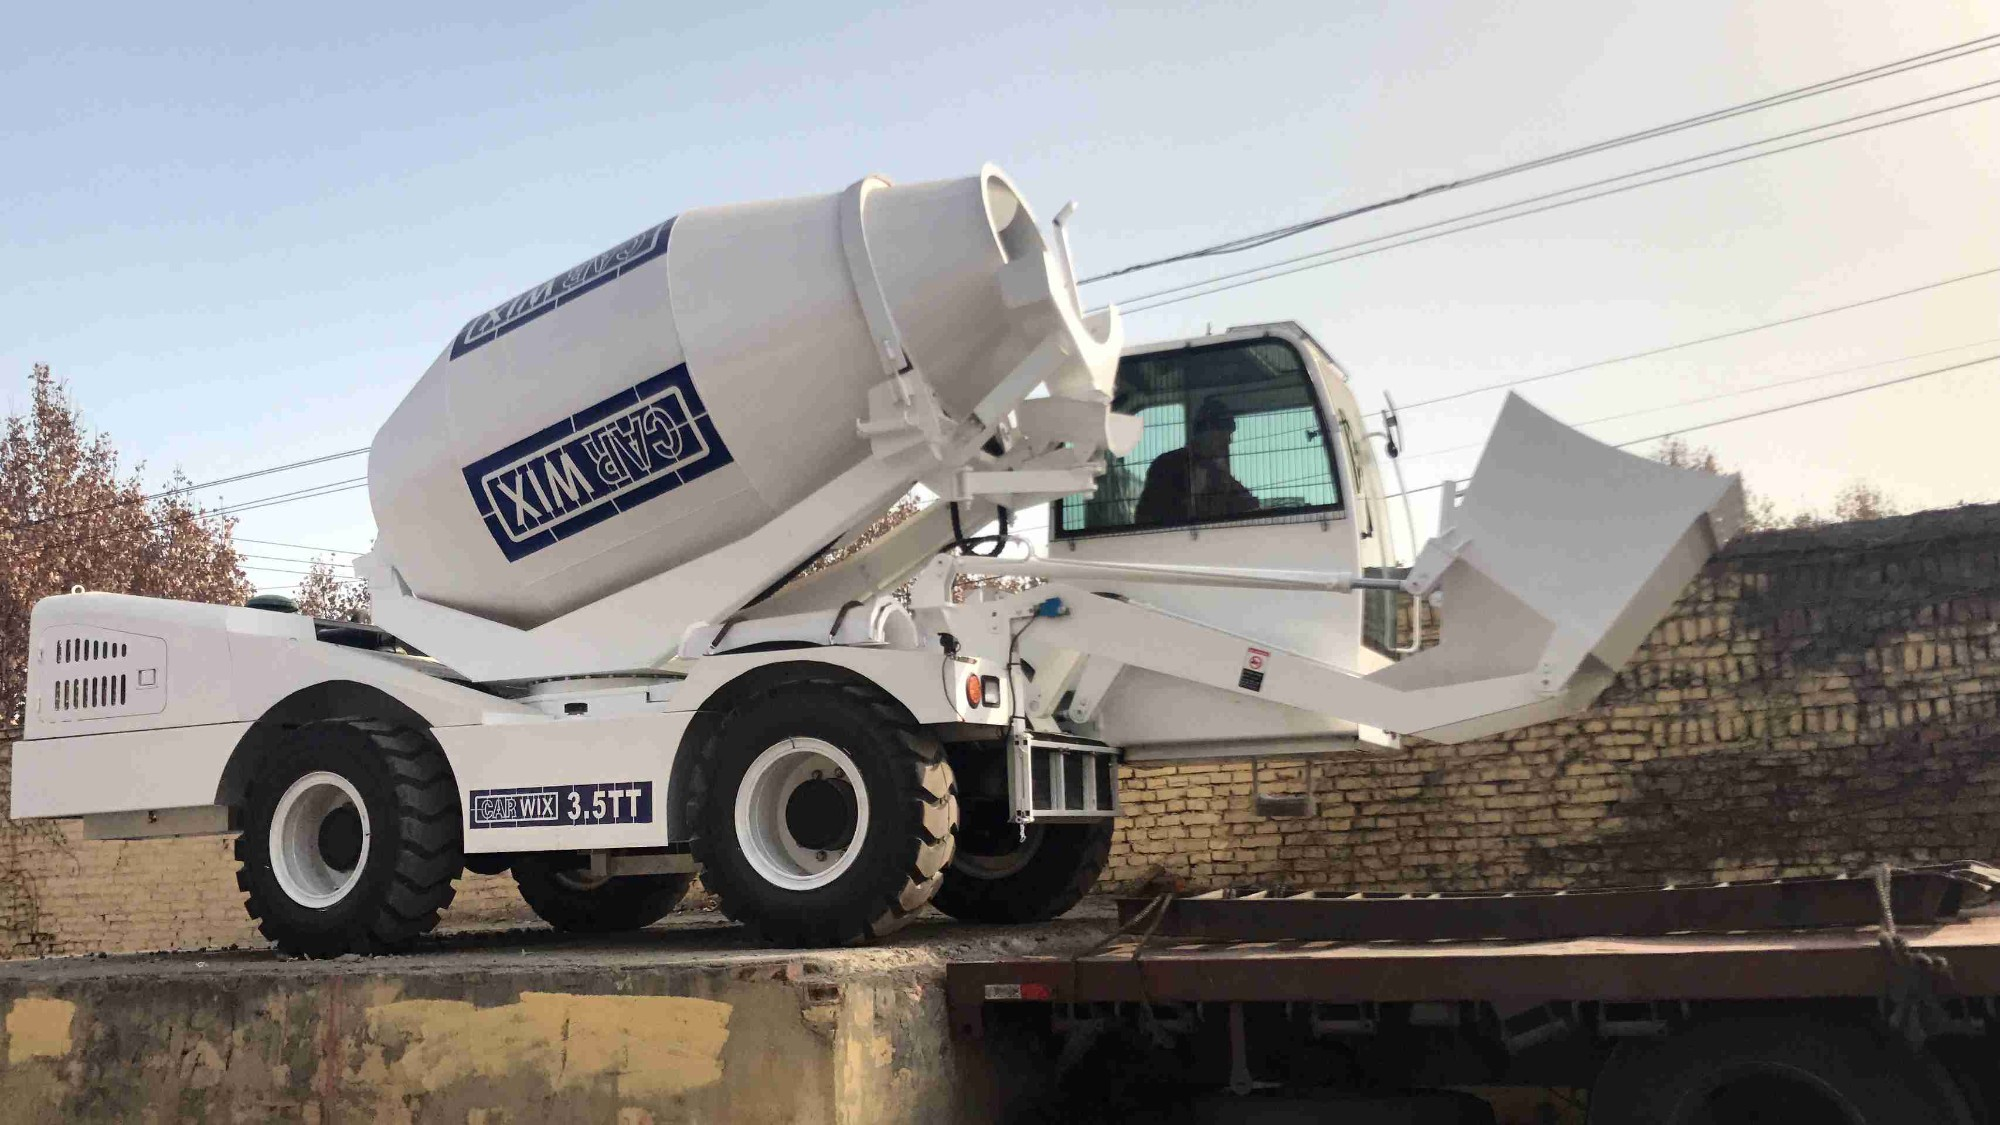 Sales Rotating Drum Cement Mixer New Self Loading Mobile Concrete Mixer, Buy Rotating Drum Cement Mixer New Self Loading Mobile Concrete Mixer, Rotating Drum Cement Mixer New Self Loading Mobile Concrete Mixer Factory, Rotating Drum Cement Mixer New Self Loading Mobile Concrete Mixer Brands